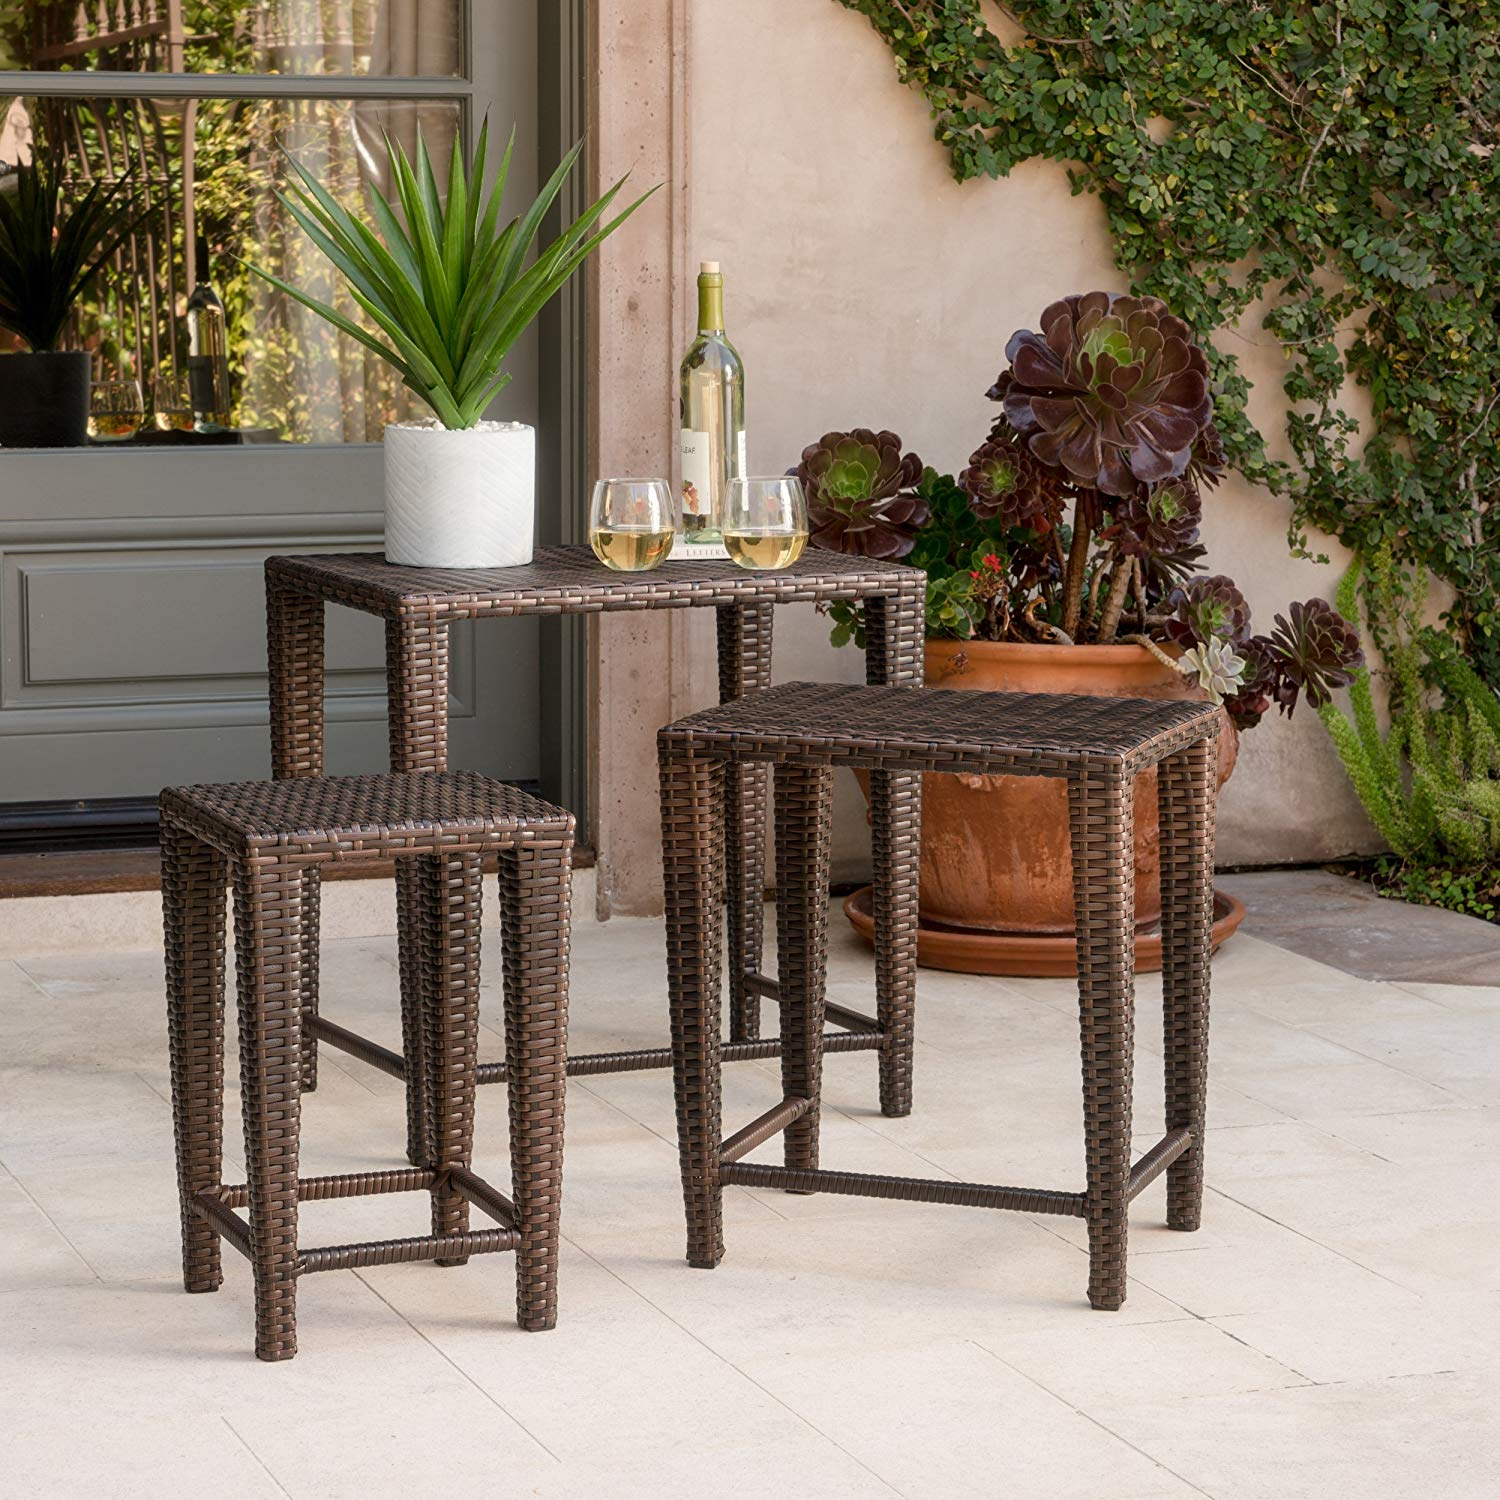 all patio furniture piece brown nested outdoor wicker side table set garden pier dining room glass lamps for bedroom stained standing lamp lucite coffee base very thin console